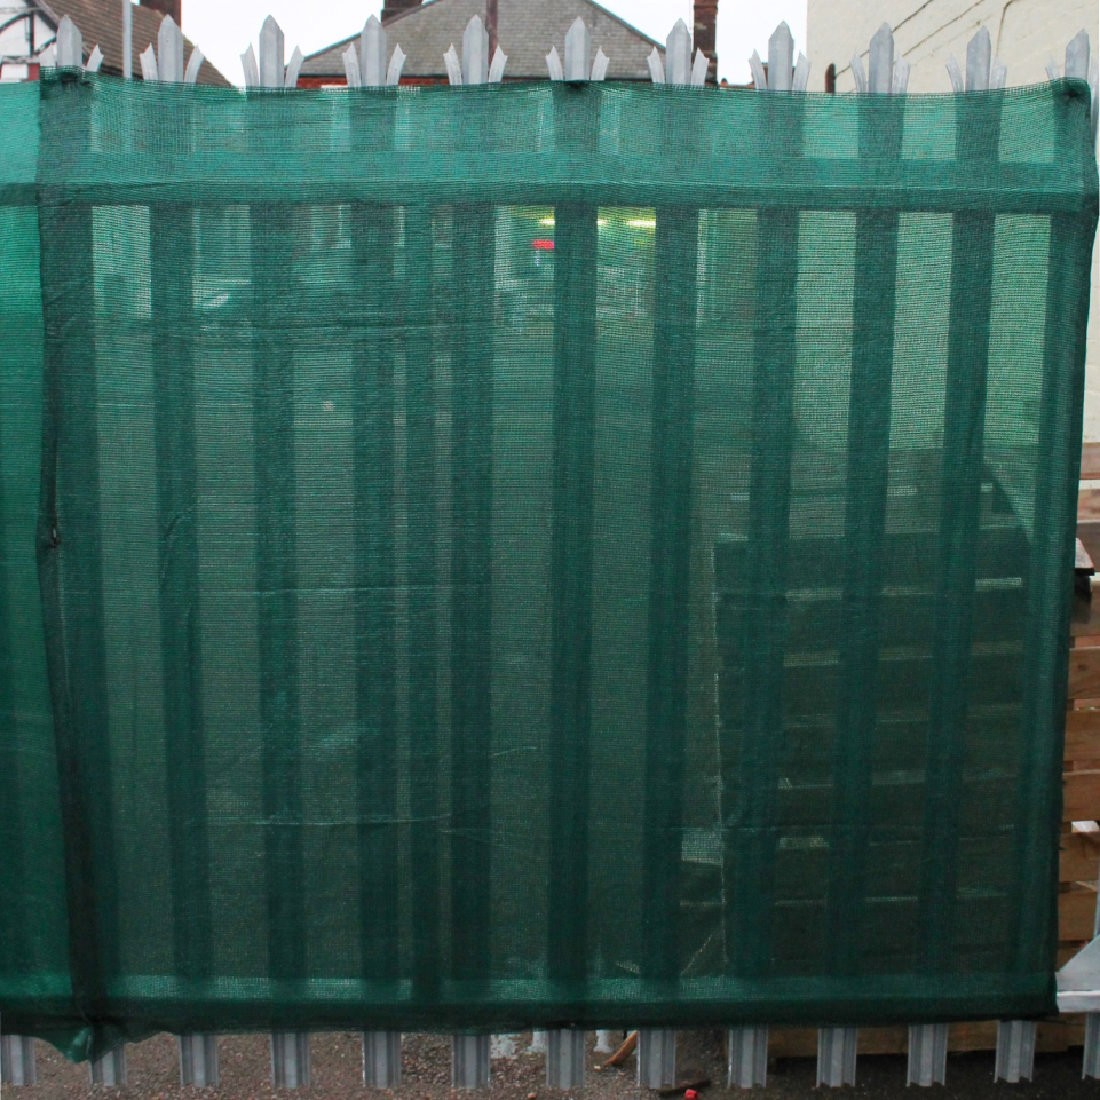 80% Shade Netting for Privacy - 1m, 1.5m or 2m High by the Metre